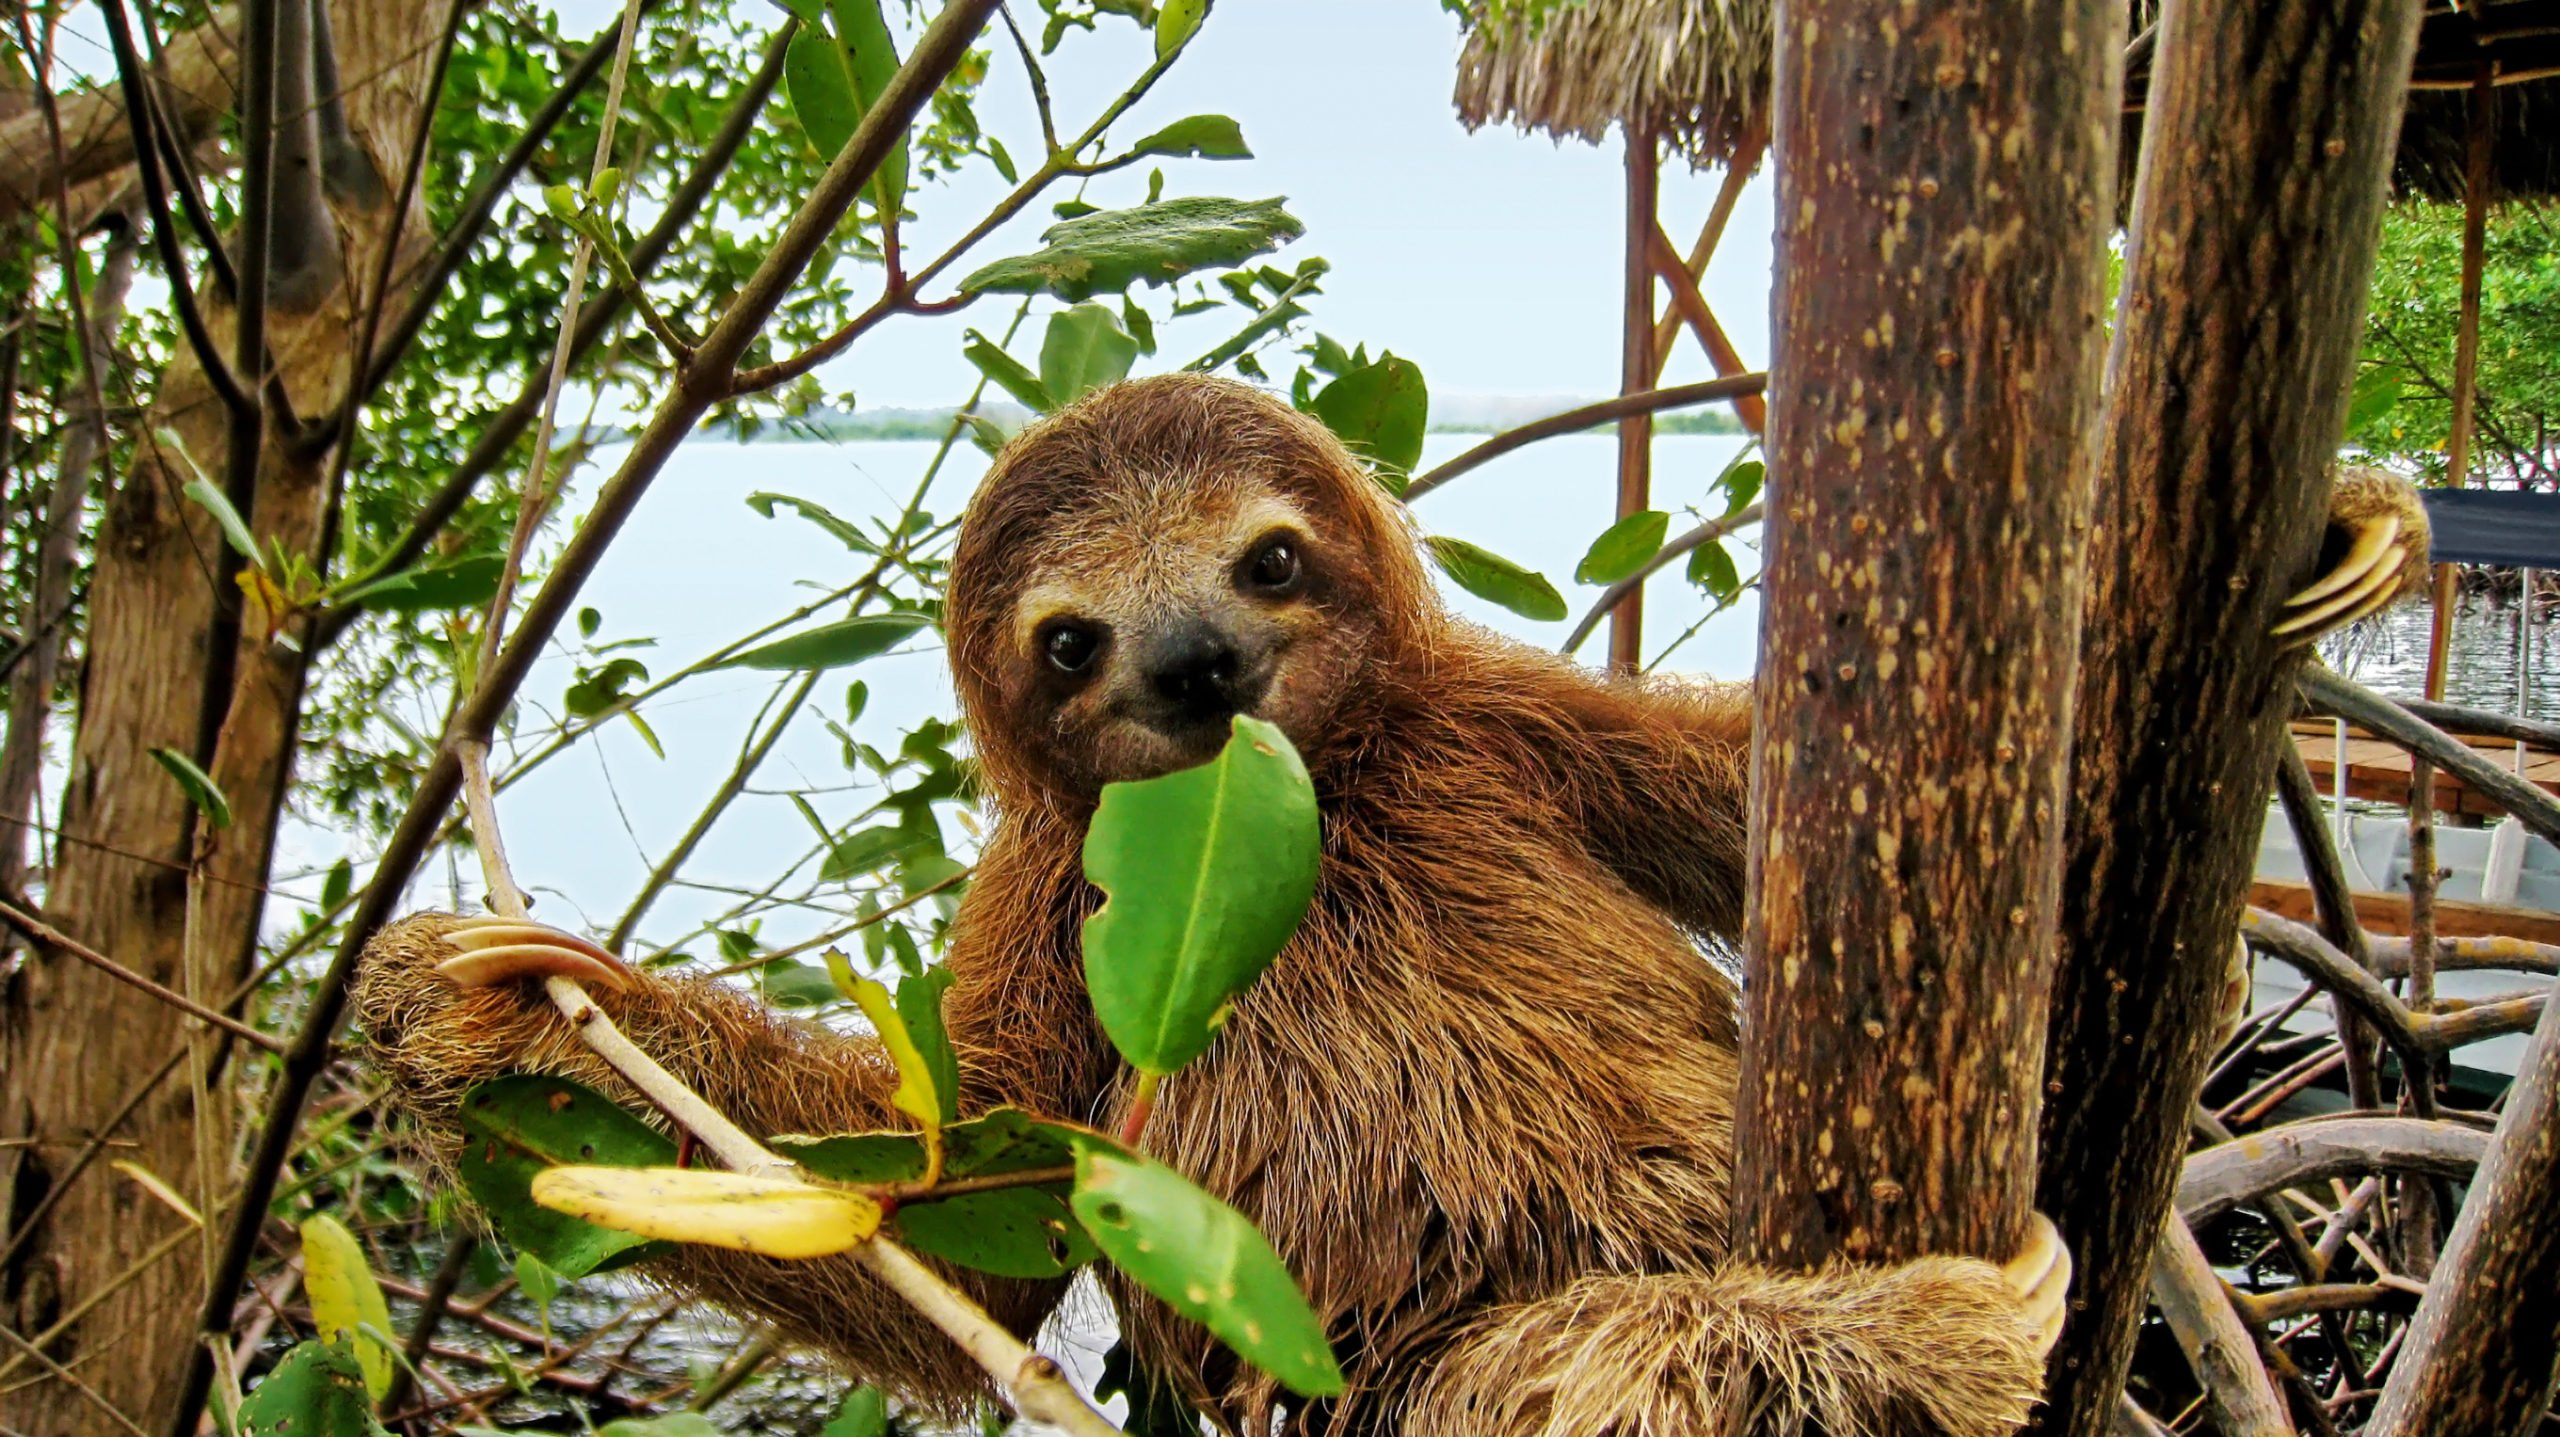 Observe The Cute Sloth In Reality And Dont Miss To Take A Picture On The Sloth Experience And Hot Springs At Arenal Volcano